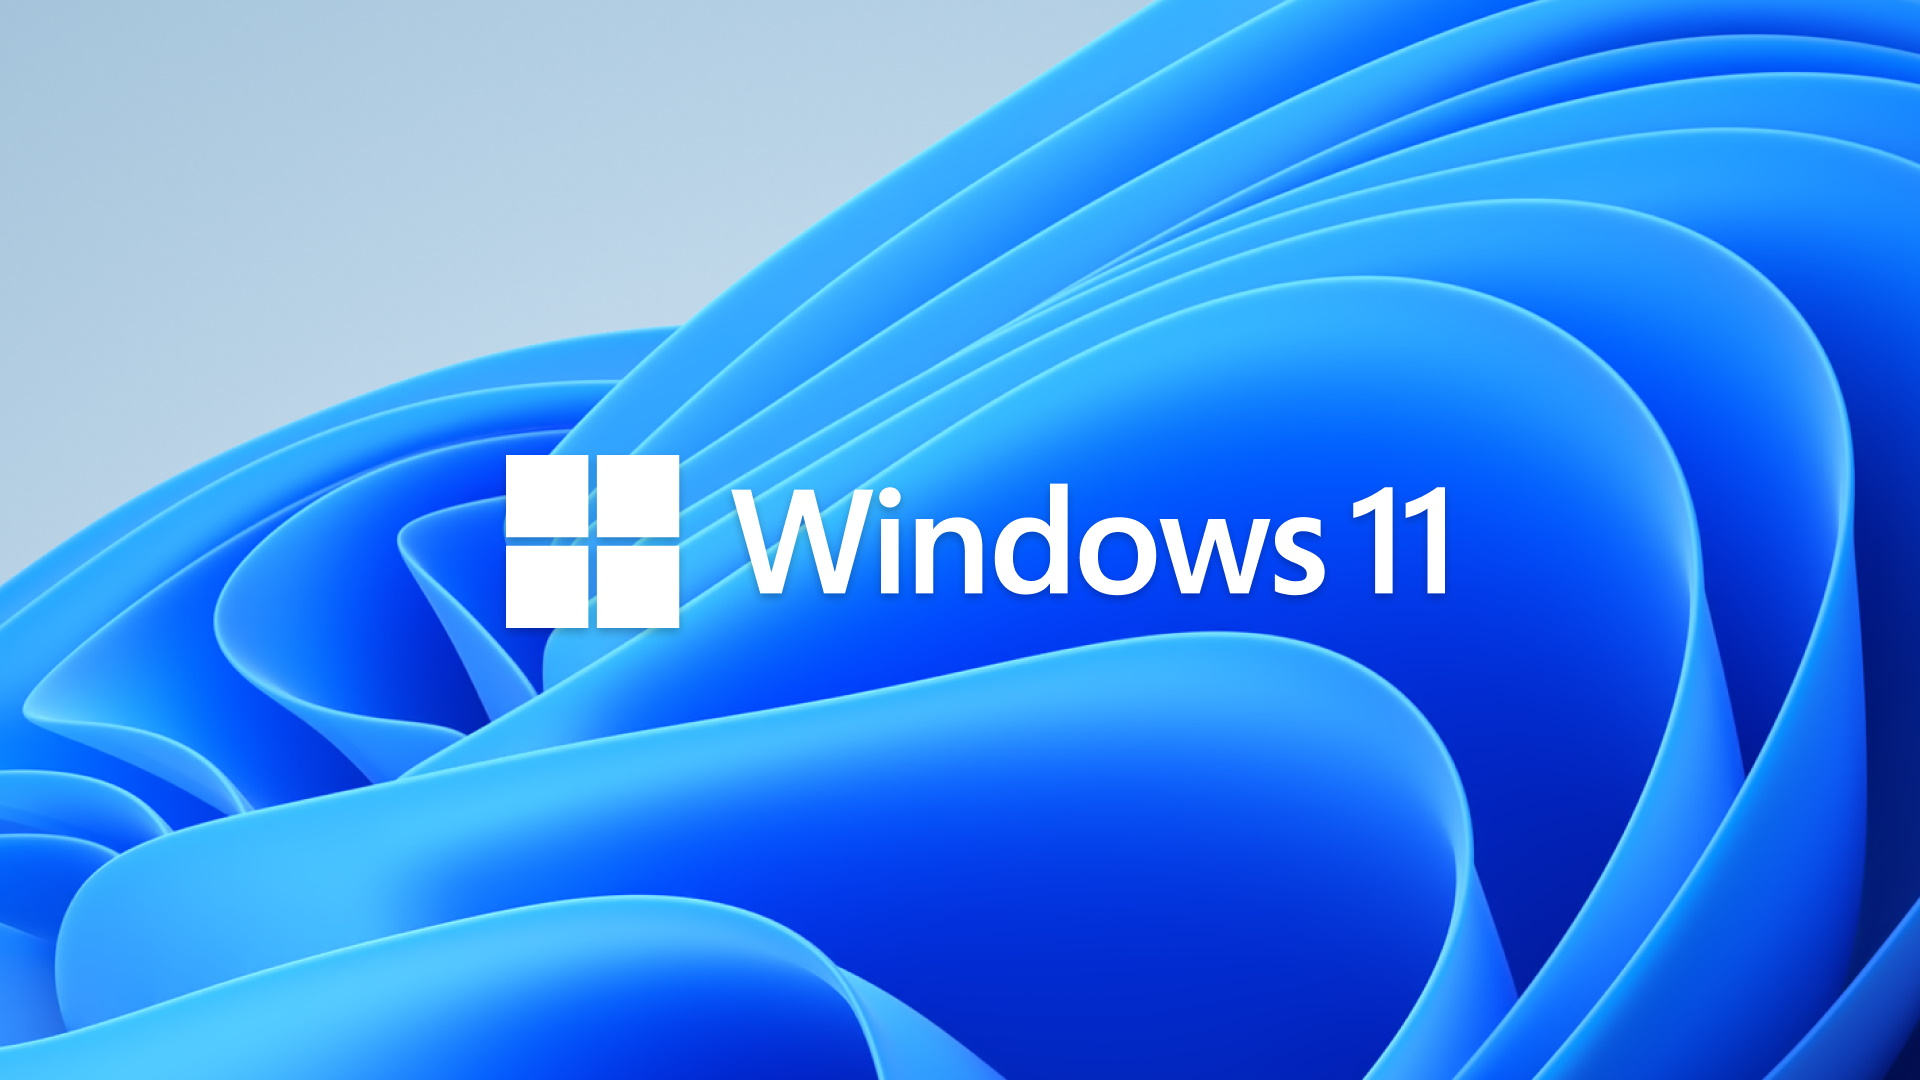 Windows 11 release date, features, specs, and price | PC Gamer